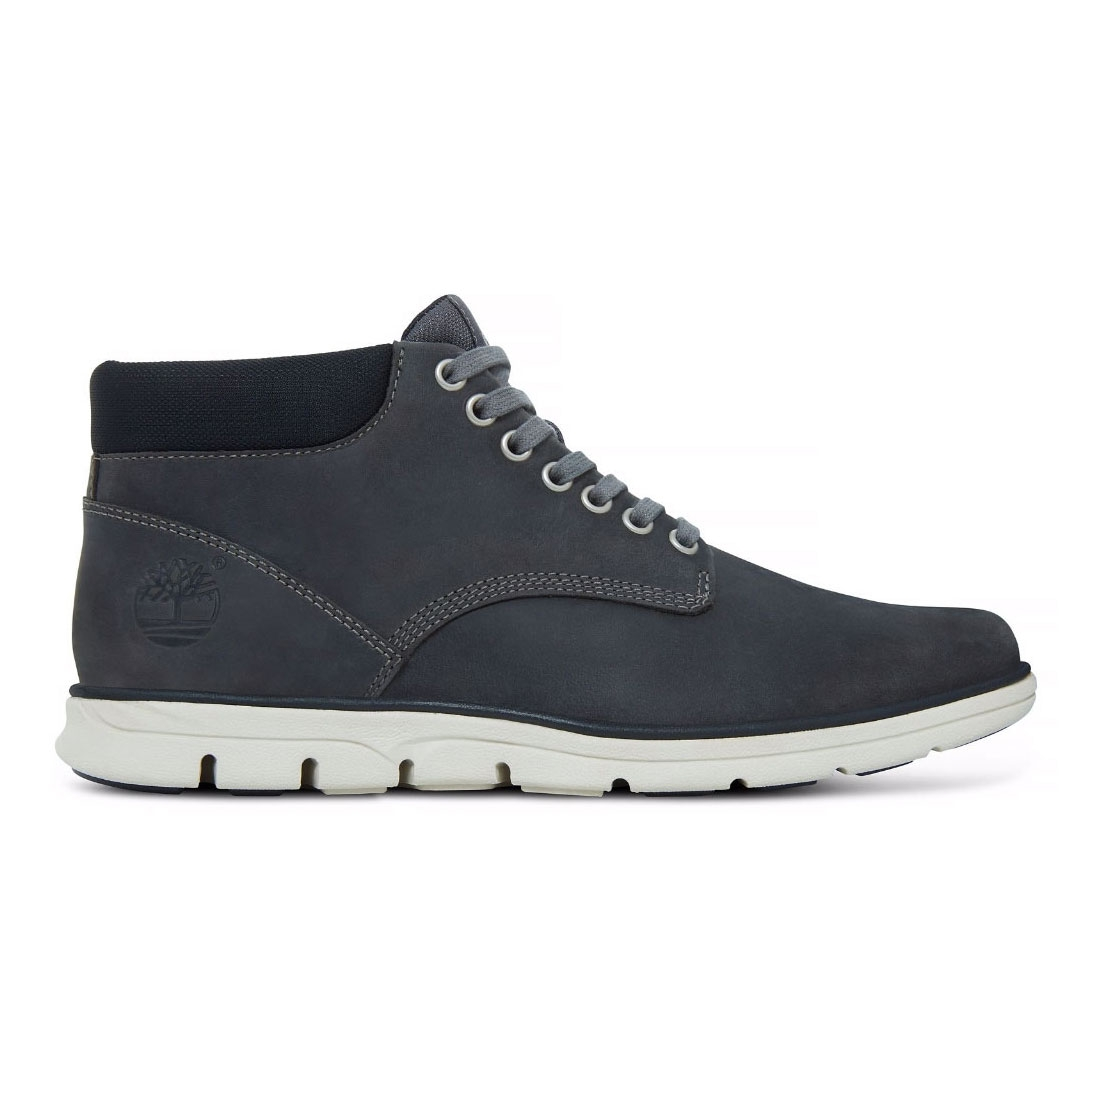 Trágico esperanza Conductividad  Timberland Bradstreet Chukka Leather Casual Boots (Men's) - Pewter  Saddleback/Dark Grey Full Grain | Uttings.co.uk